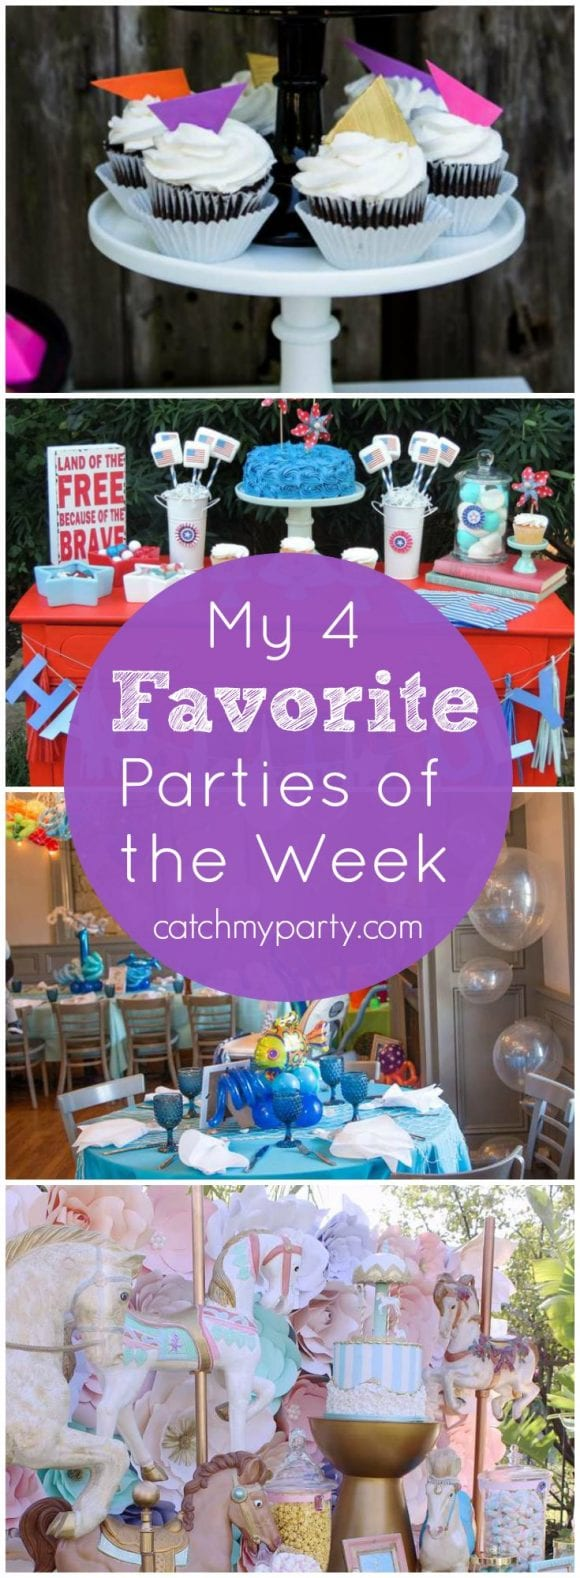 My favorite parties this week are a geometry party, a patriotic 4th of July party, a under the sea boy birthday party , and a carousel dreams pastel birthday party